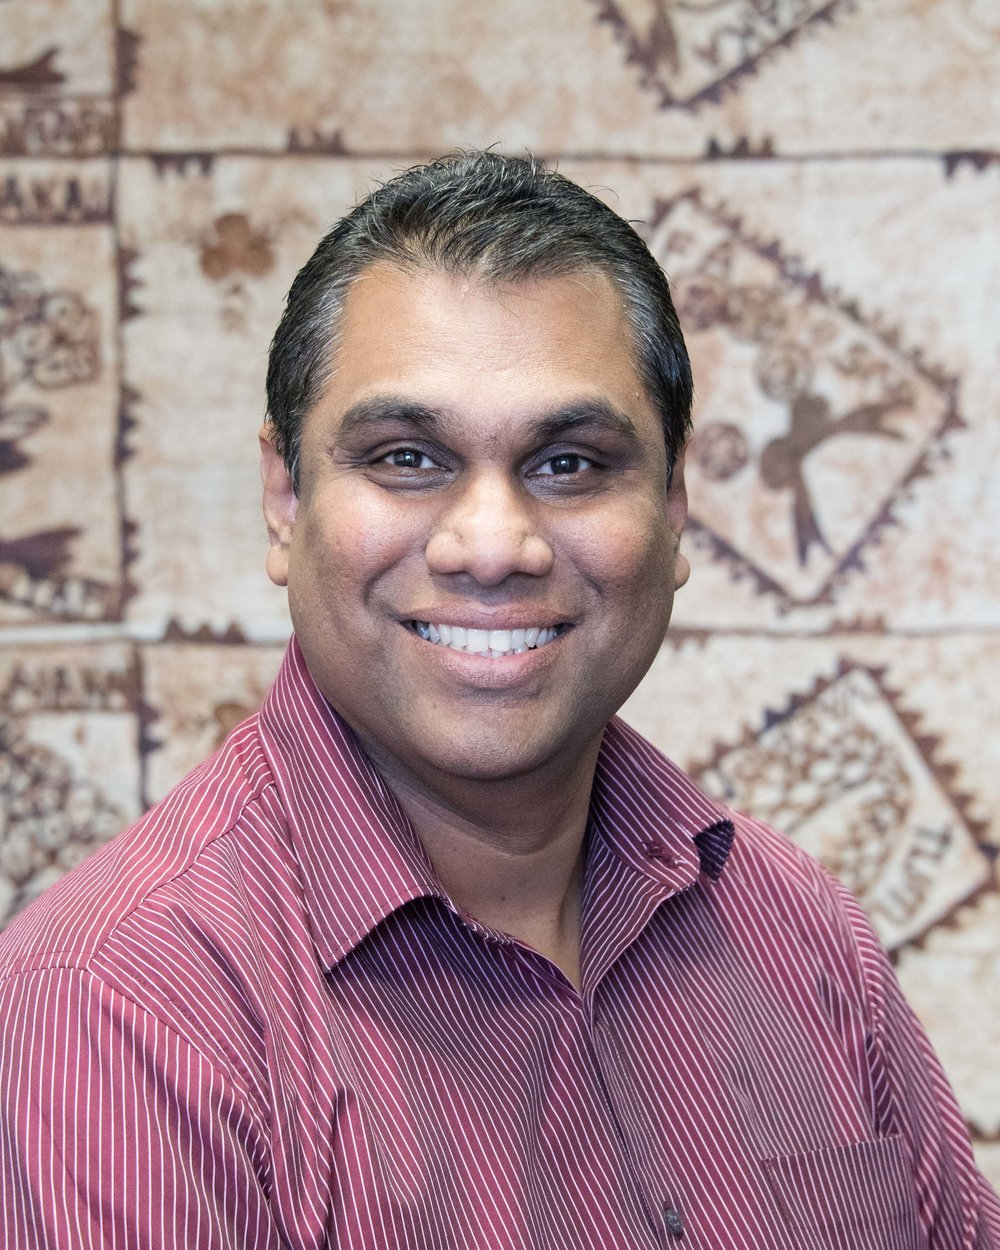 Chamath Ekanayake   Business Support Administrator  Chamath is responsible for business administration at FSM and developing partnerships.  He has a background in financial analysis, business and marketing, and holds an MBA from the University of Sri Jayewardenepura.